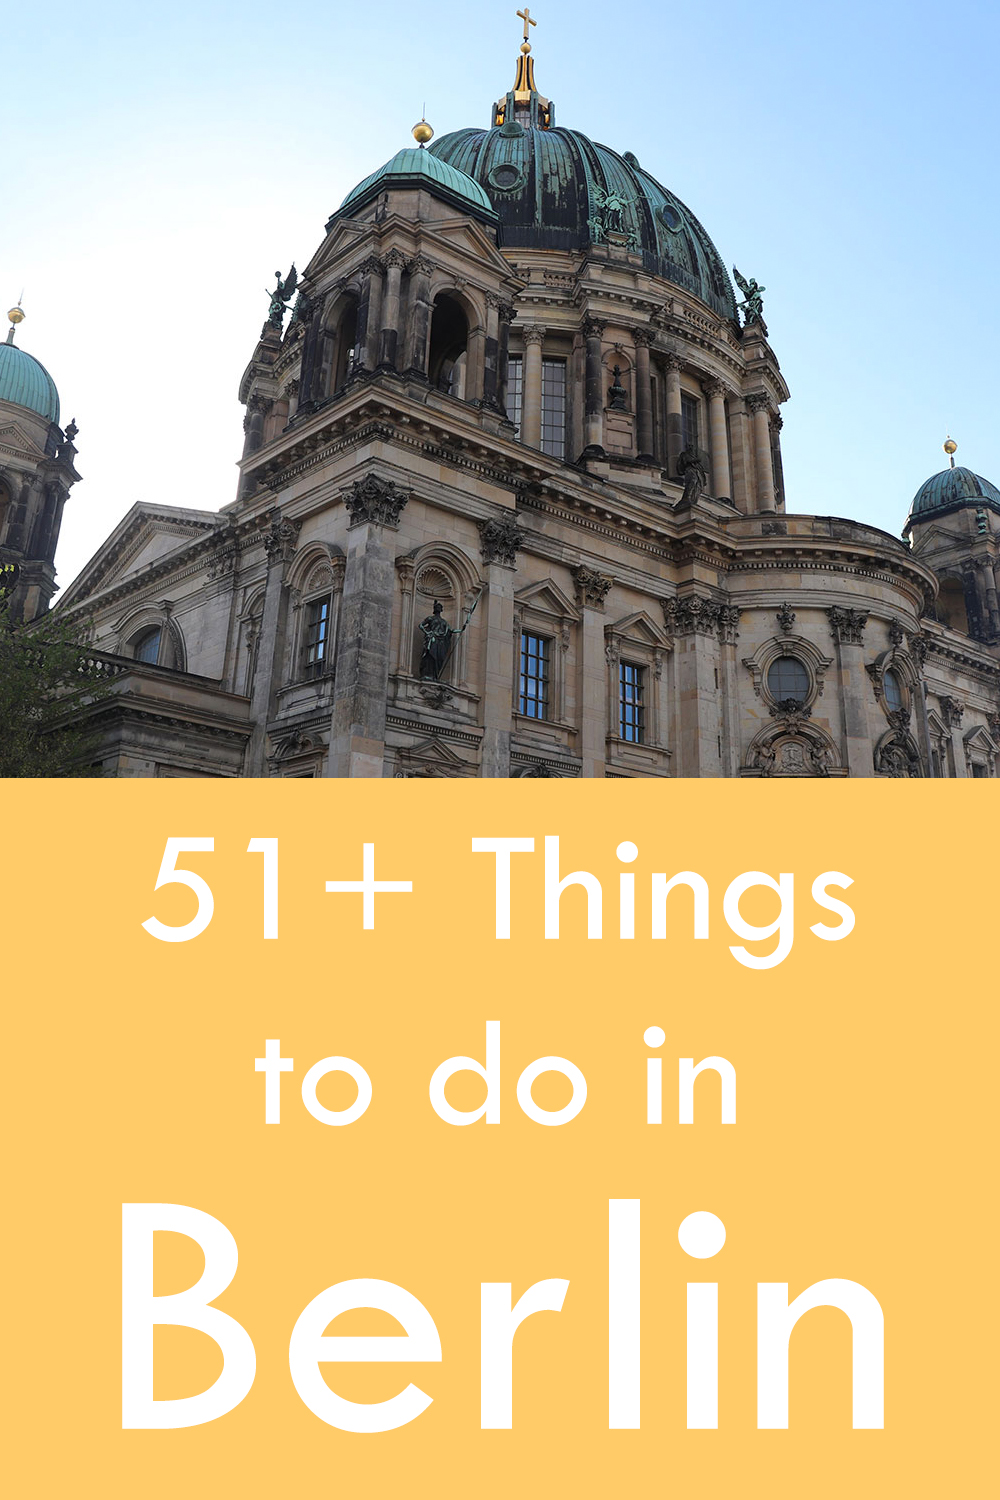 51+ Things to Do in Berlin, Germany